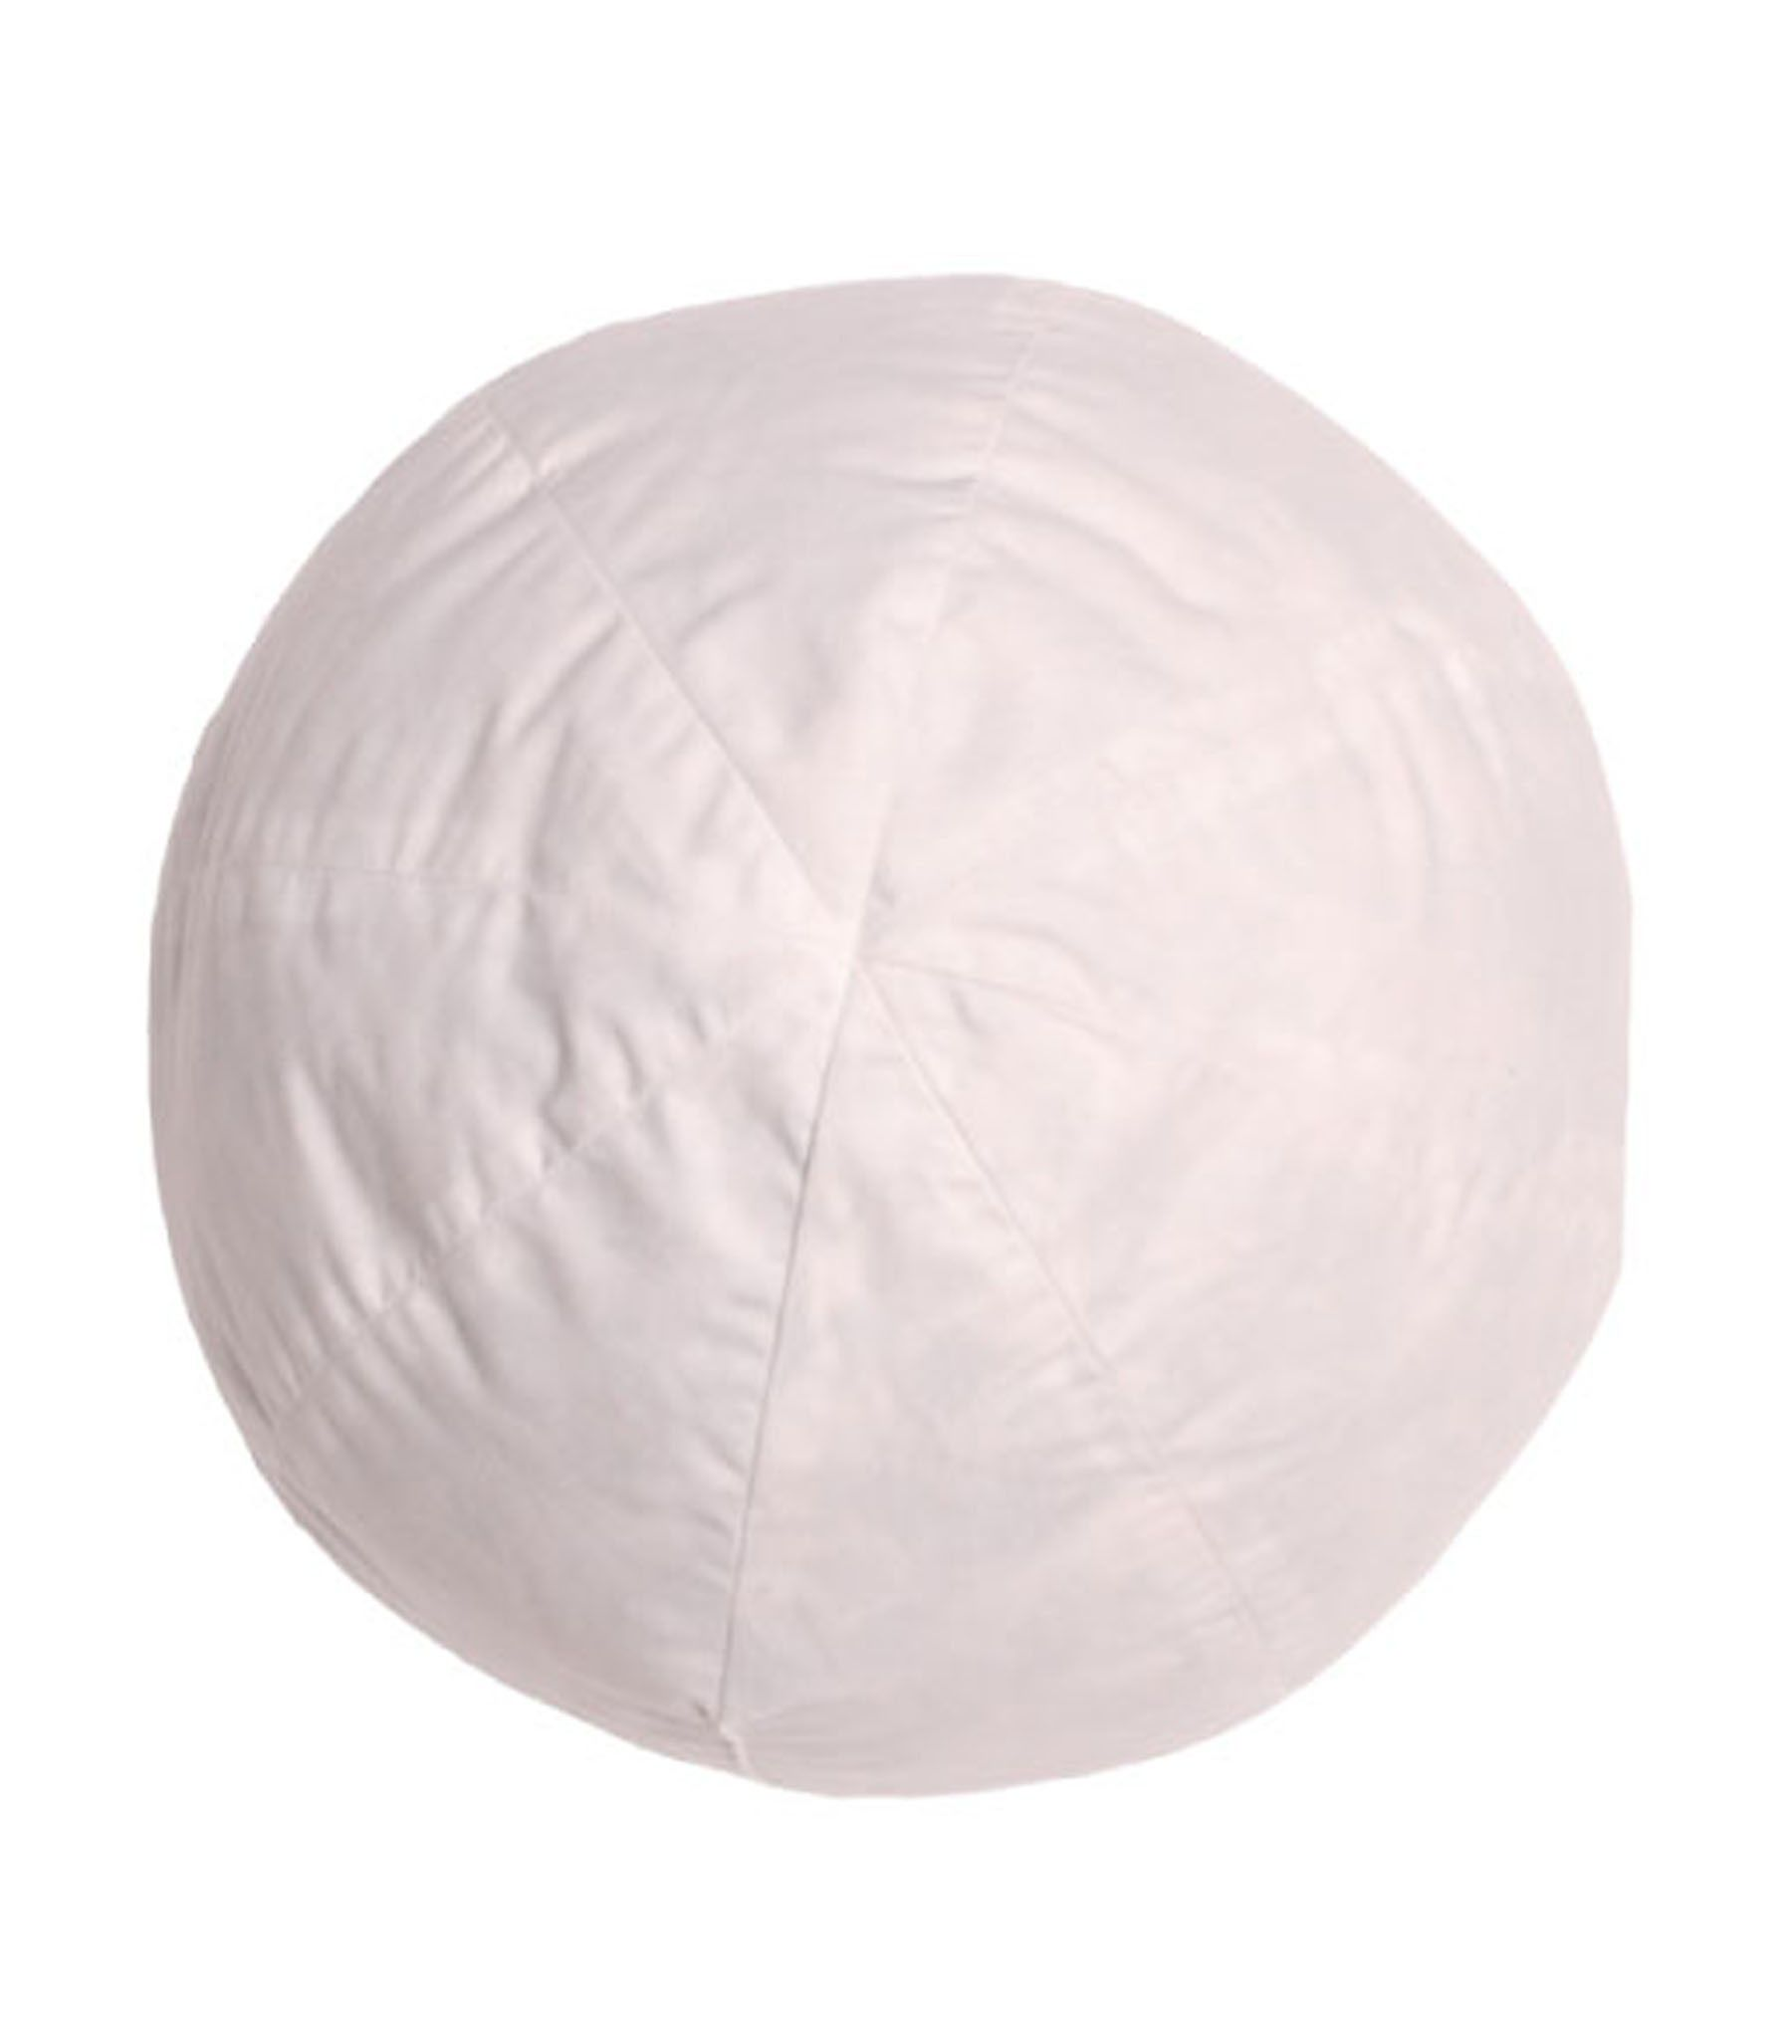 down etc 235tc ball pillow insert filled with feathers